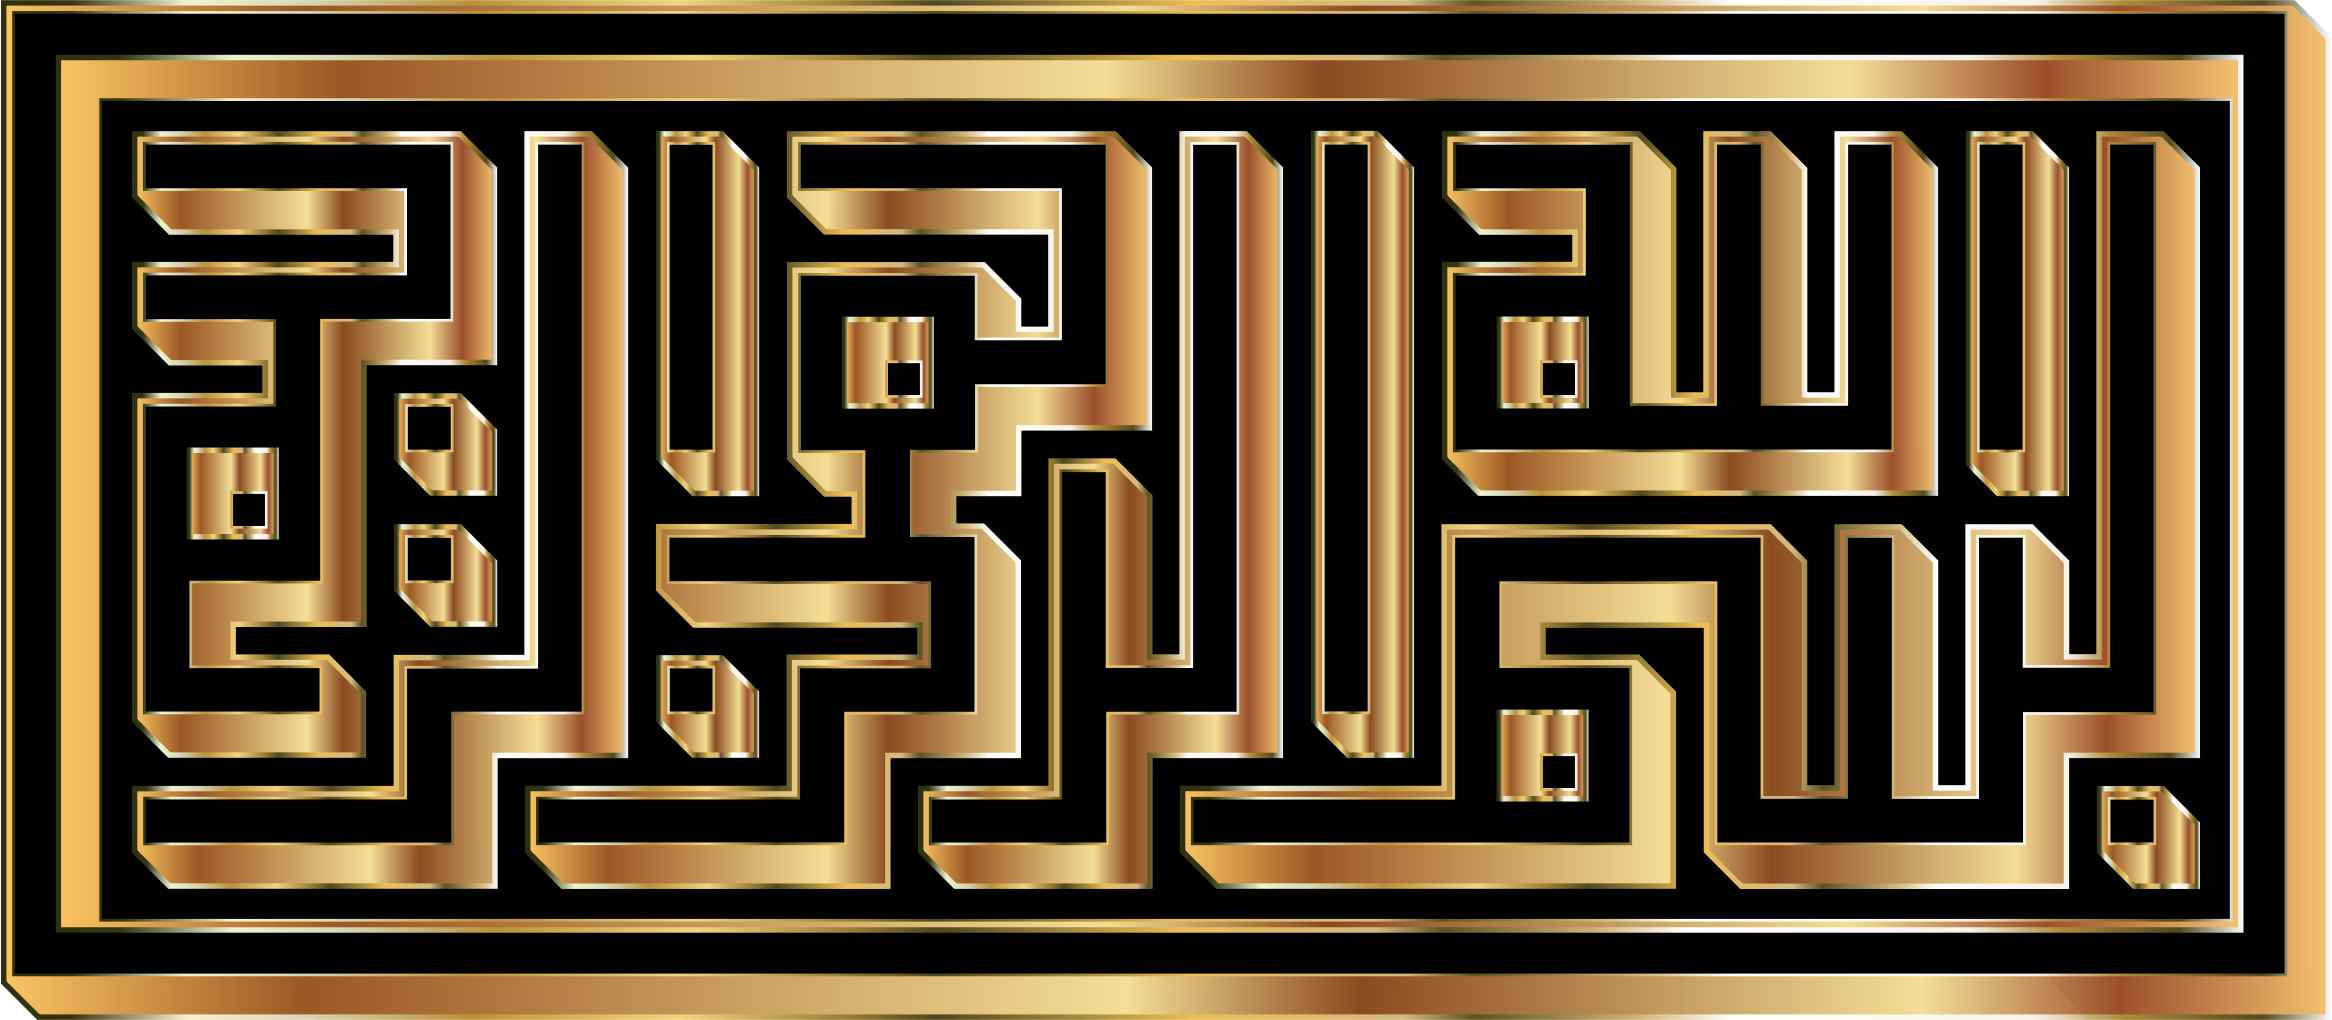 Gold BismAllah In Kufic Style by GDJ